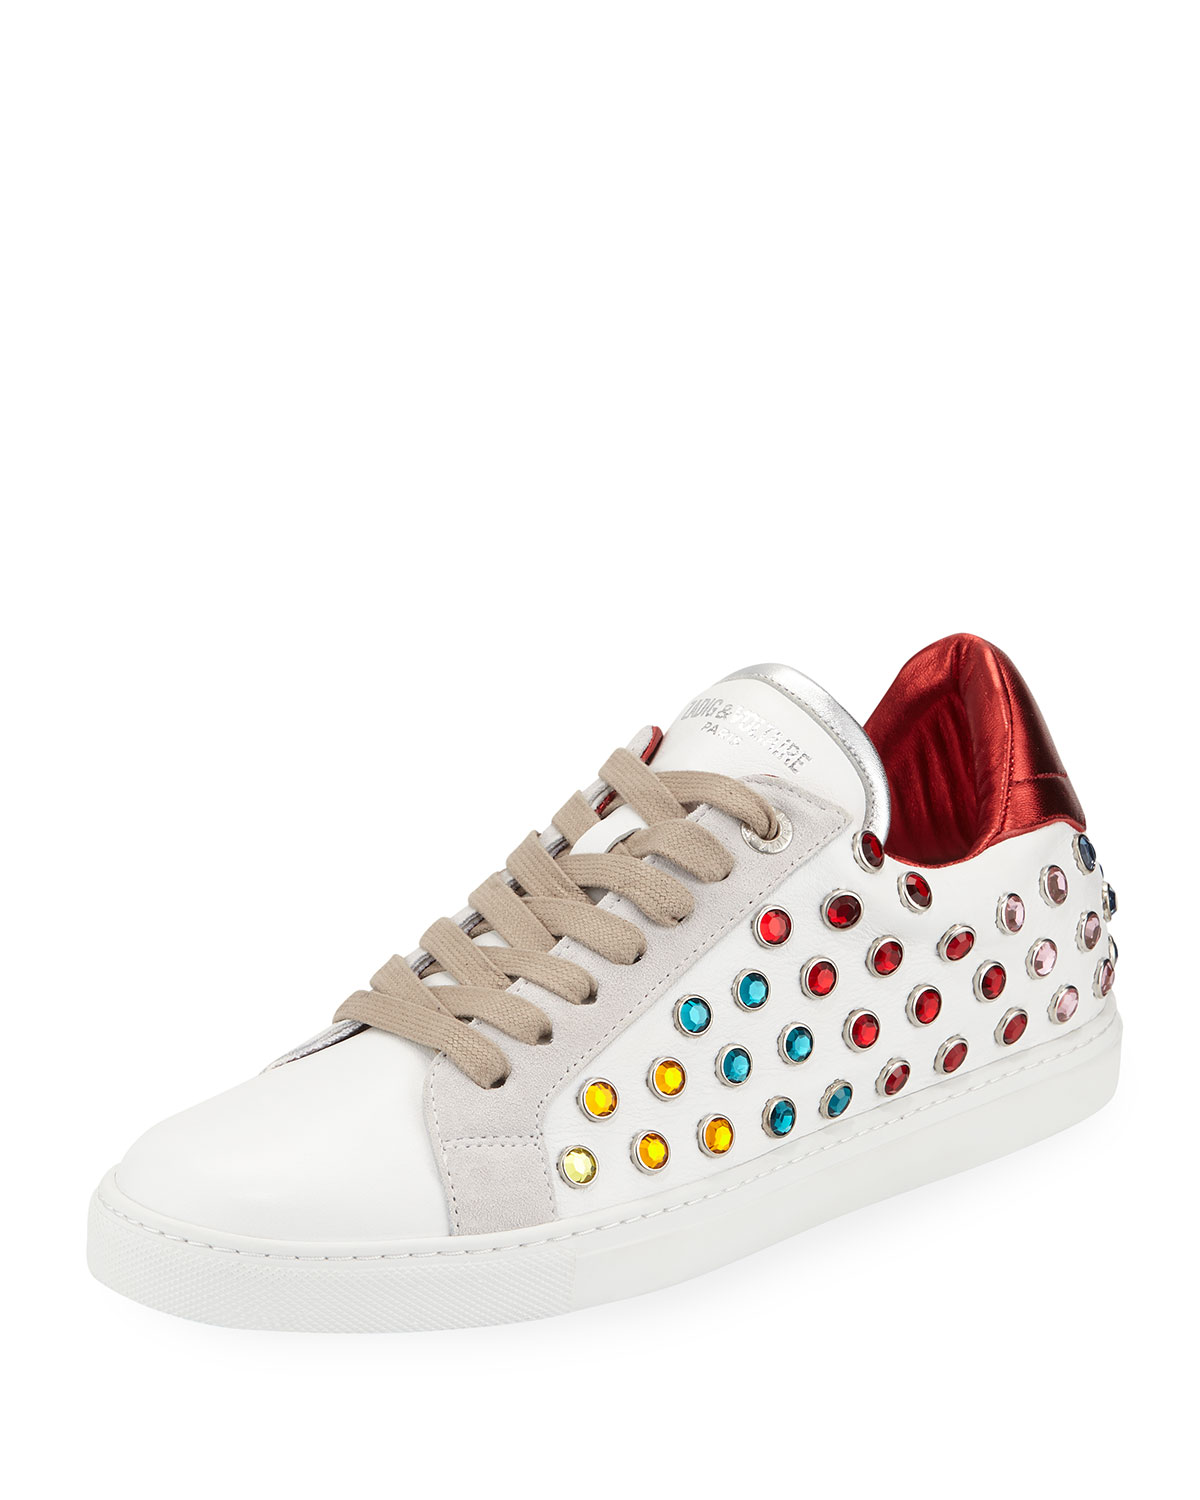 Zadig & Voltaire Leather and Strass Hidden-Wedge Low-Top Sneakers